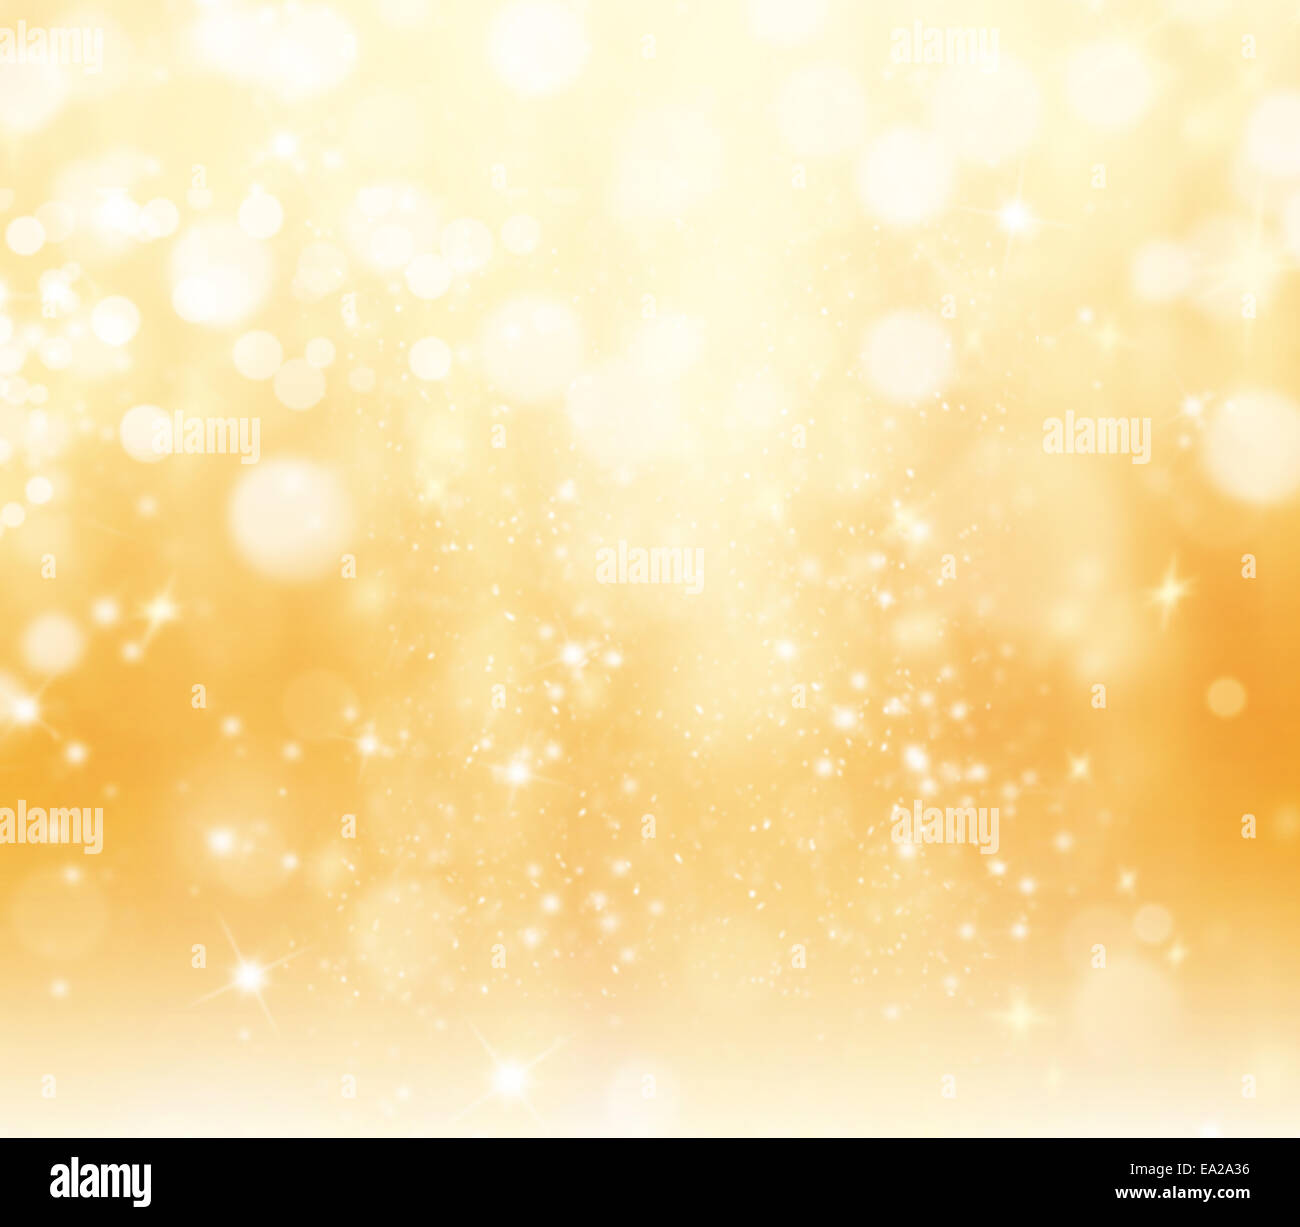 Shimmering blur spot lights on abstract background - Stock Image